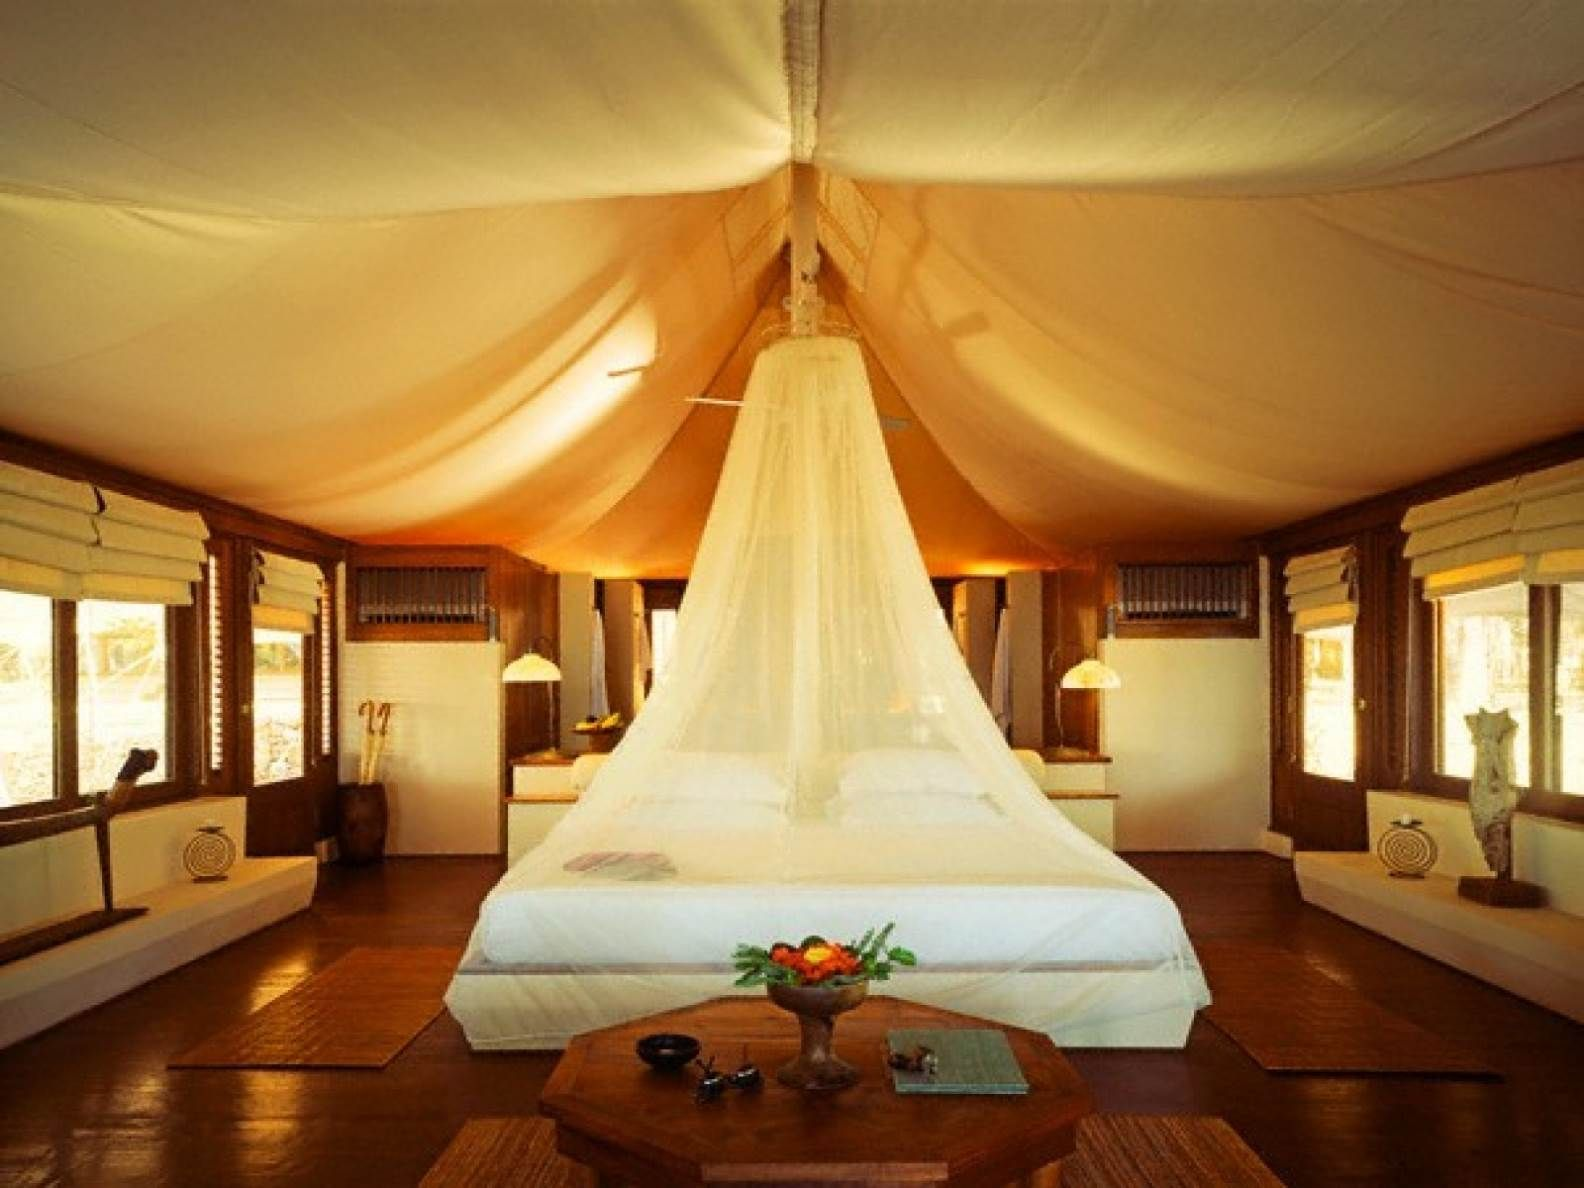 Couples Bedroom Designs Cool Bedroom Decorating Ideas For Guys  Decorating Ideas  Pinterest Design Decoration